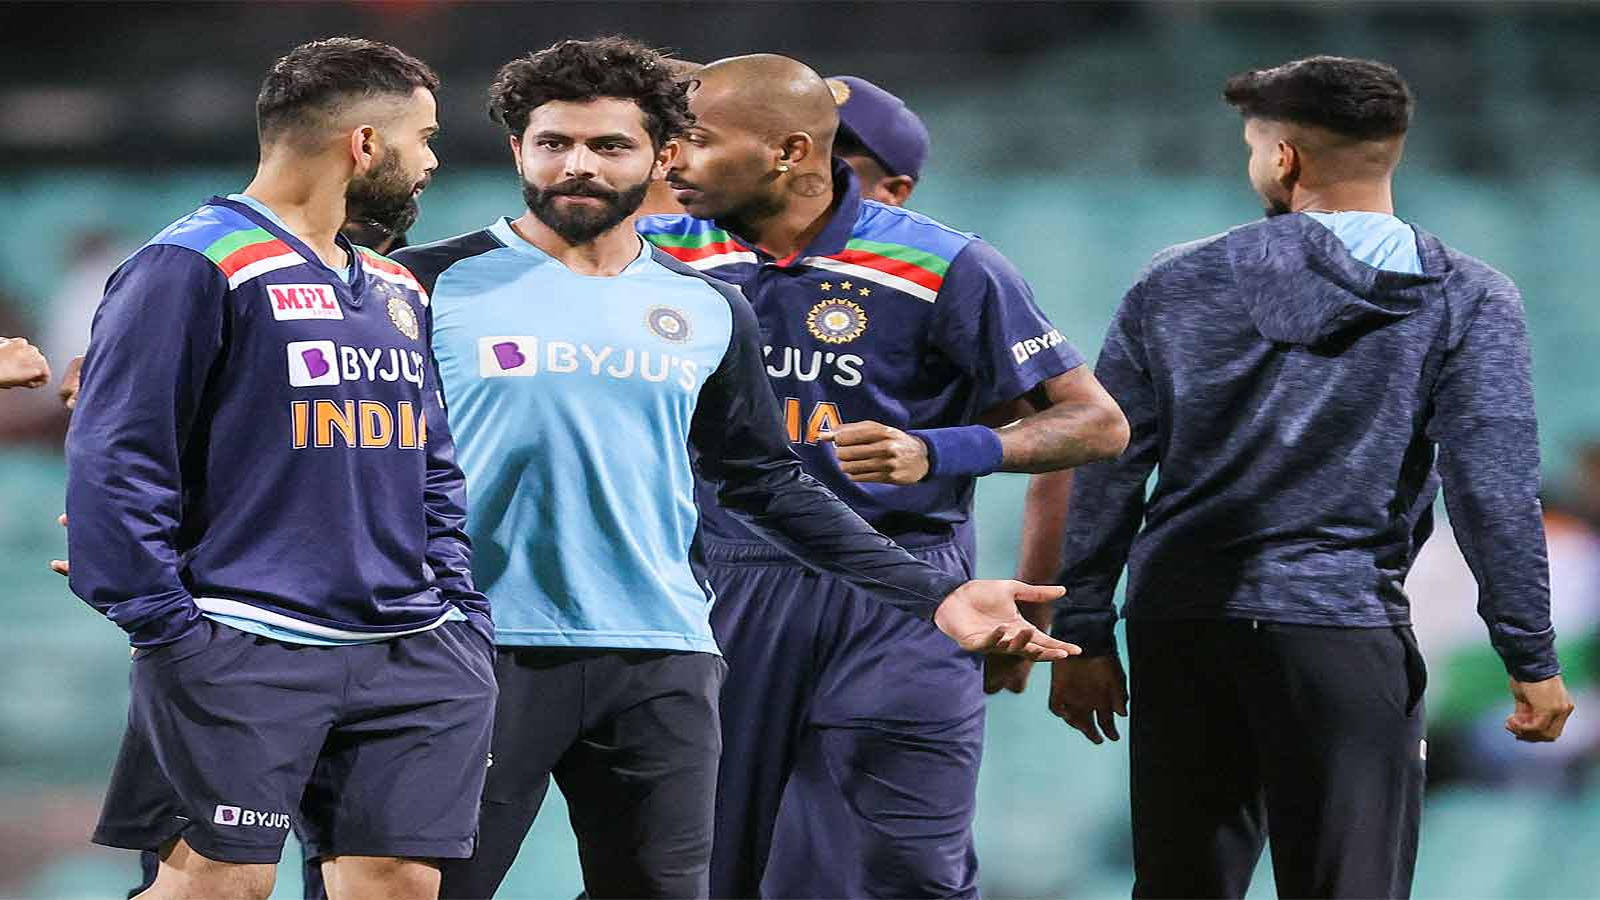 india-to-take-on-australia-in-3rd-odi-to-avoid-clean-sweep